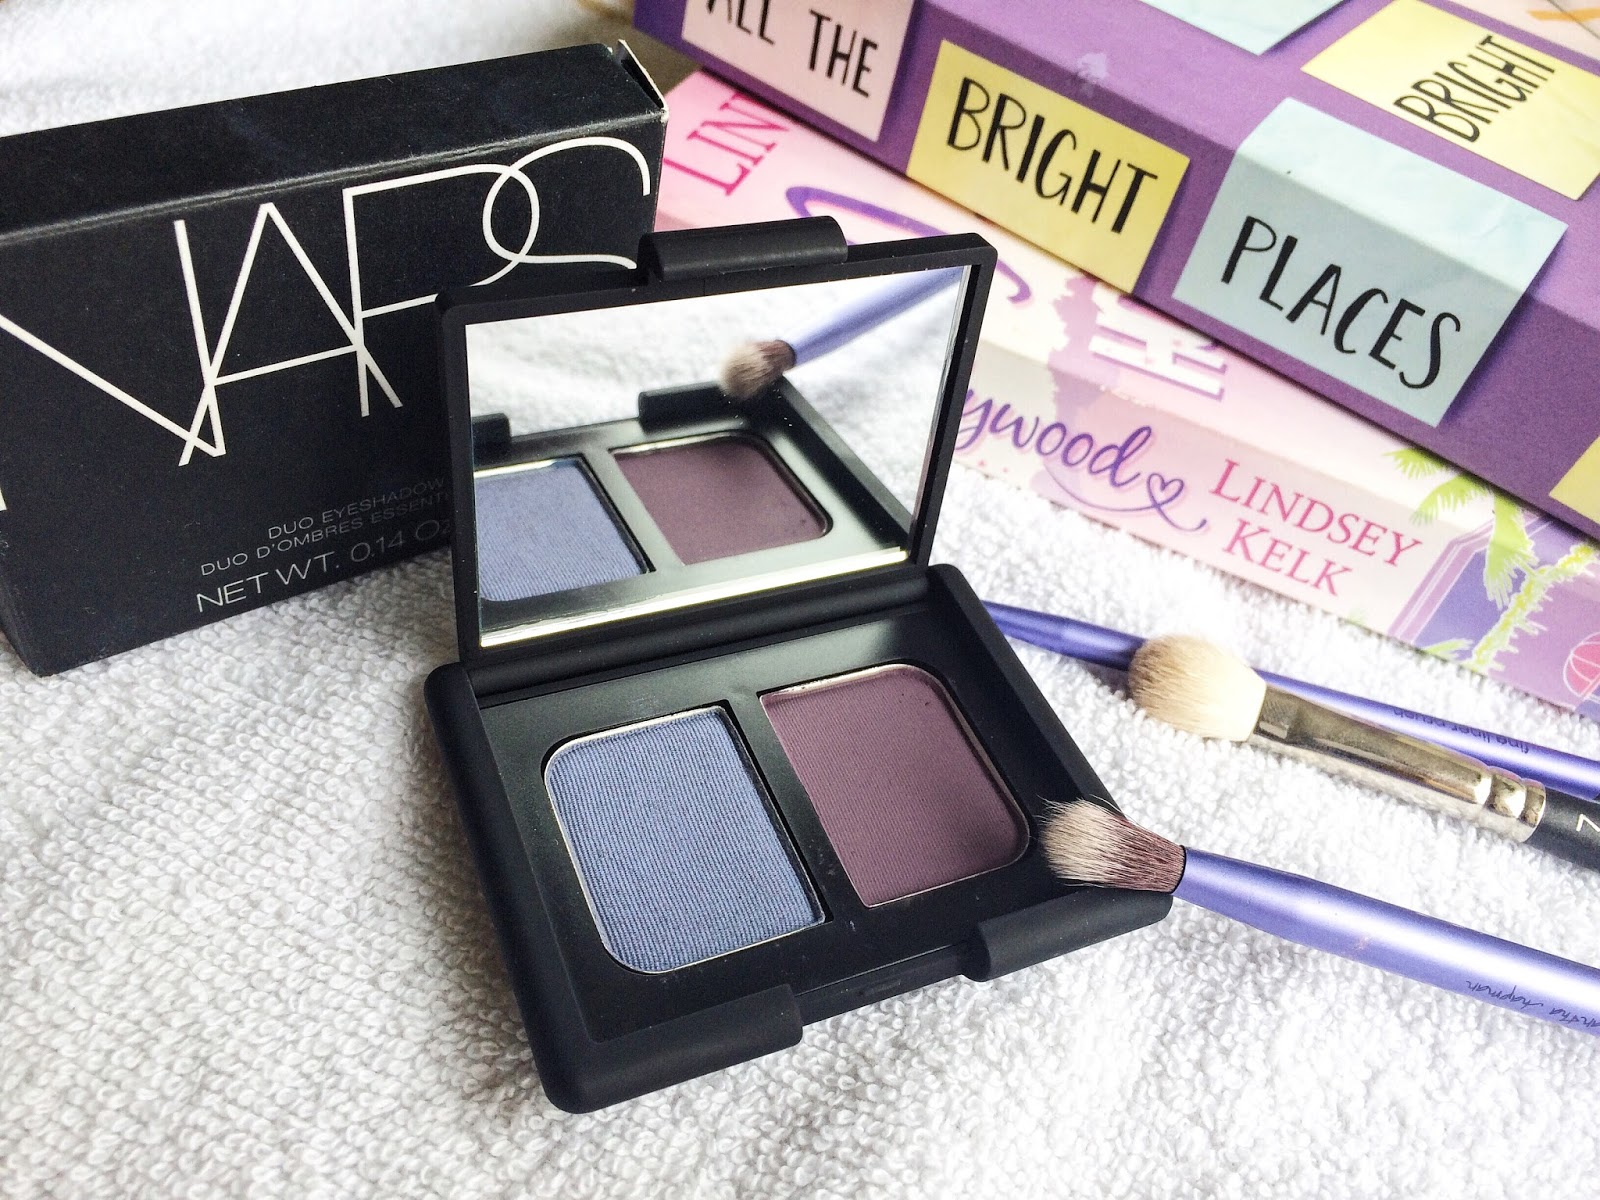 How to get cheap Nars make up